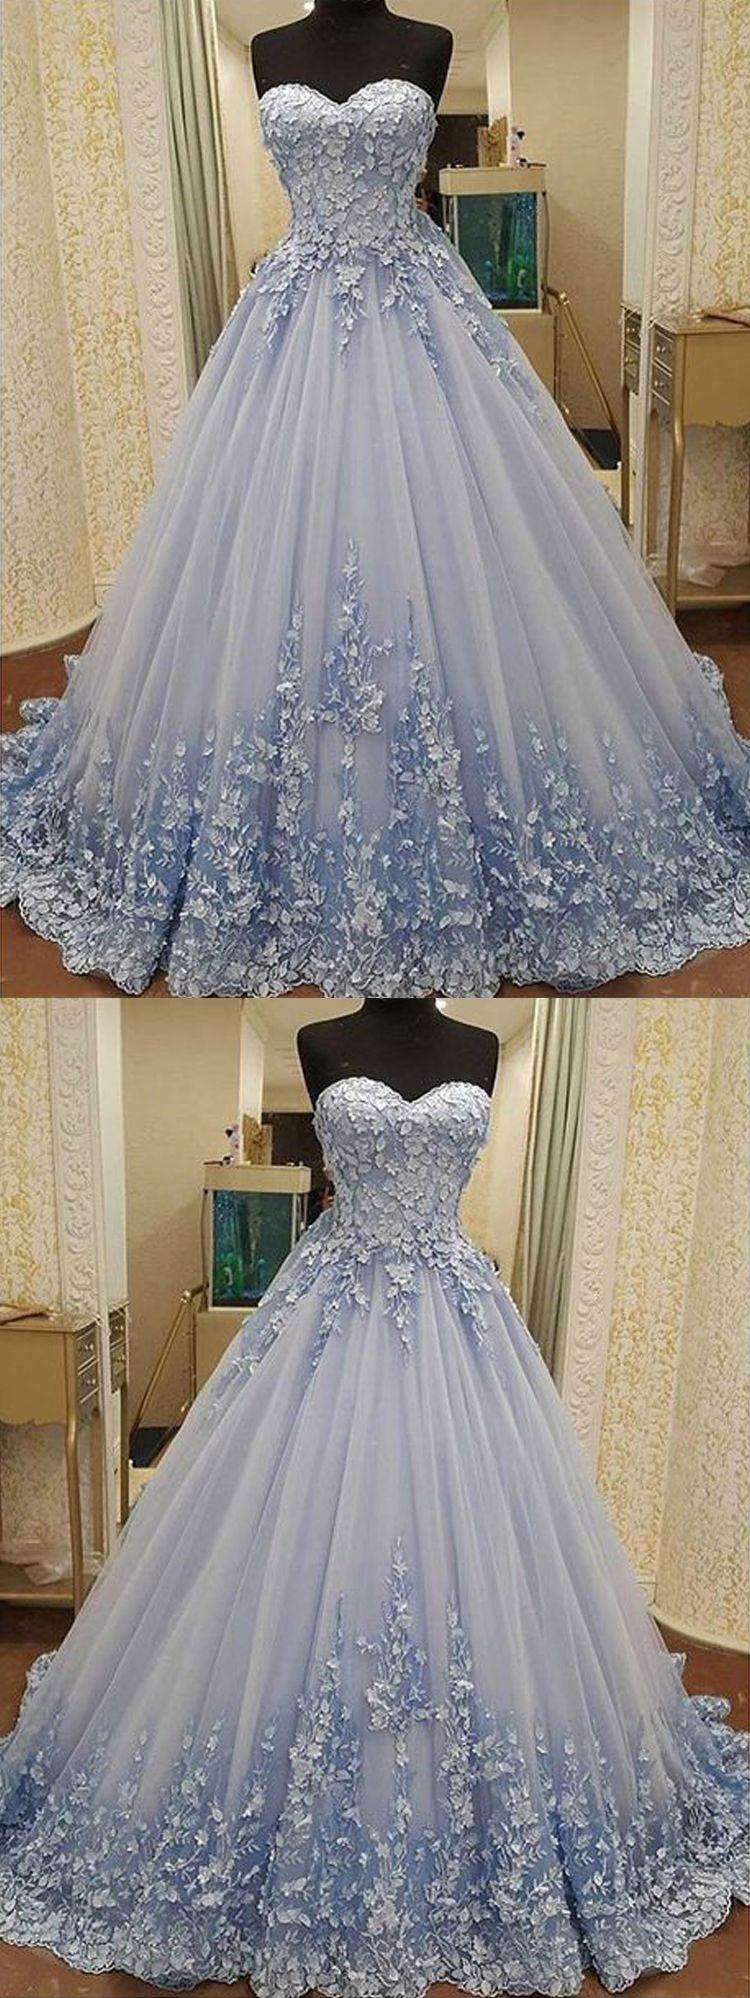 » Gorgeous Ball Gown Sweetheart Light Blue Lace Long Prom Dresses with Appliques, Luxurious Quinceanera Dresses #bluepromdresses